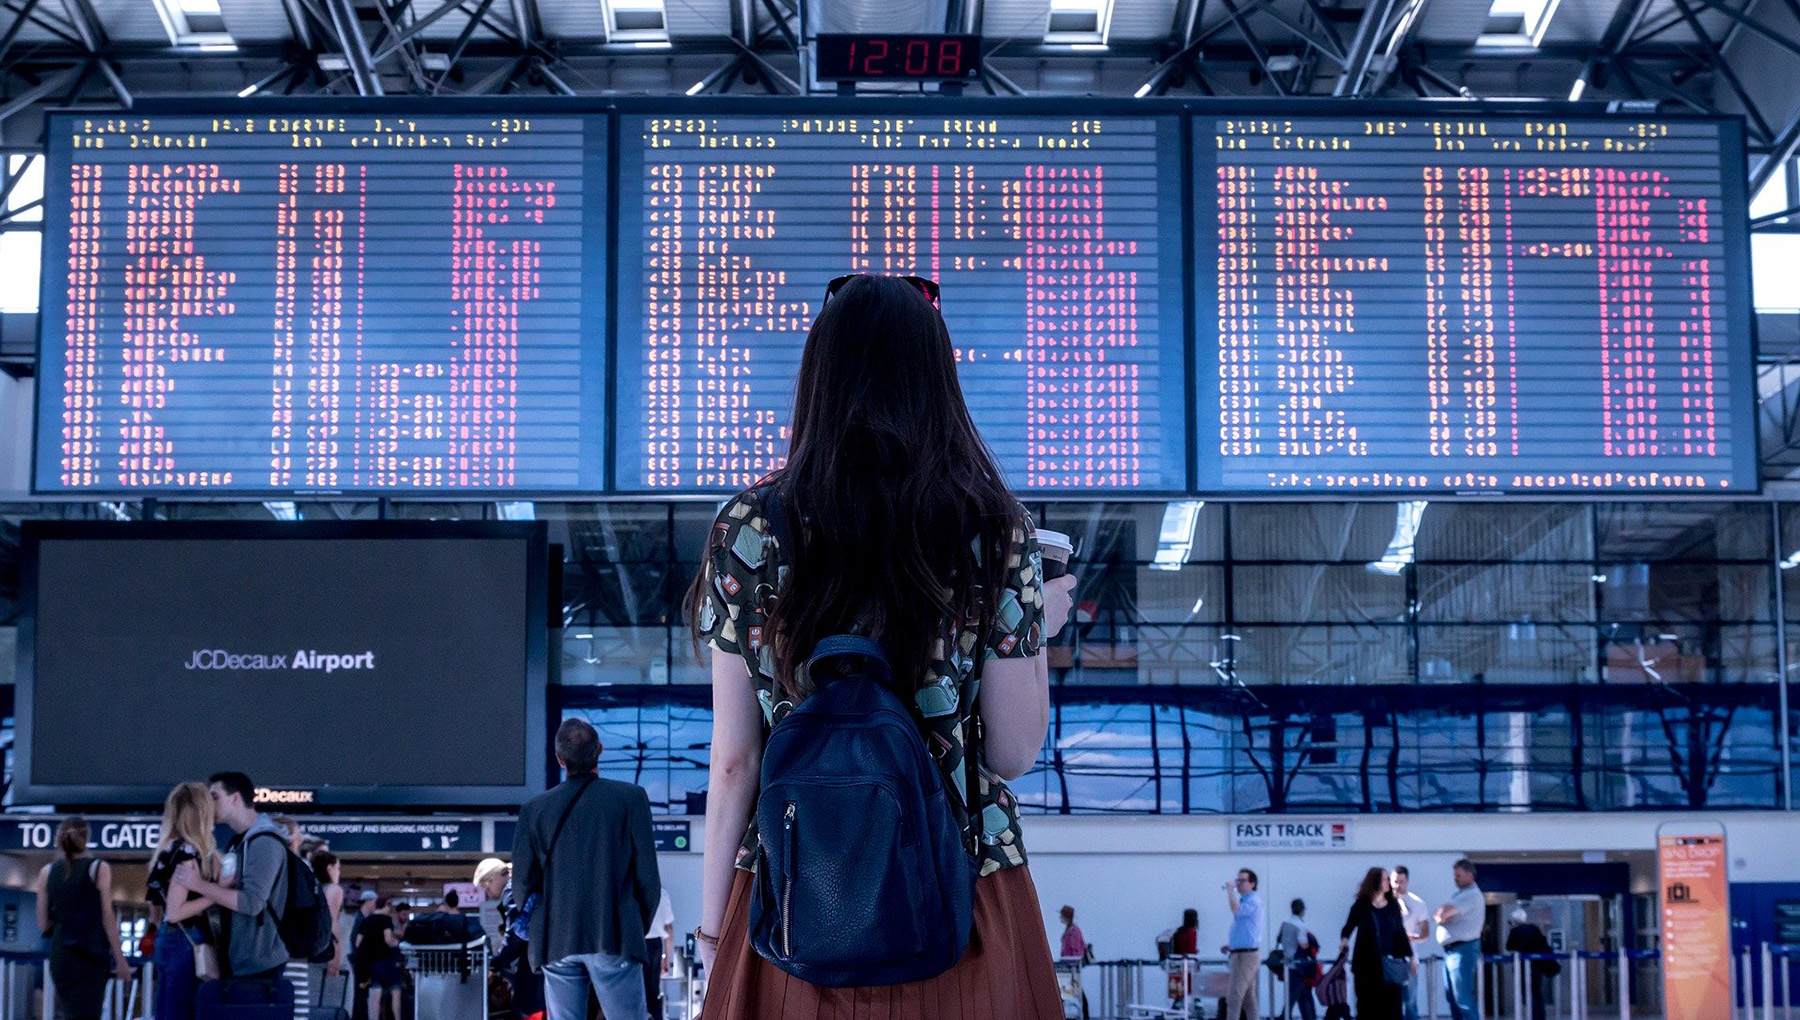 A woman at an airport, looking at the departure flights screen. Photo.